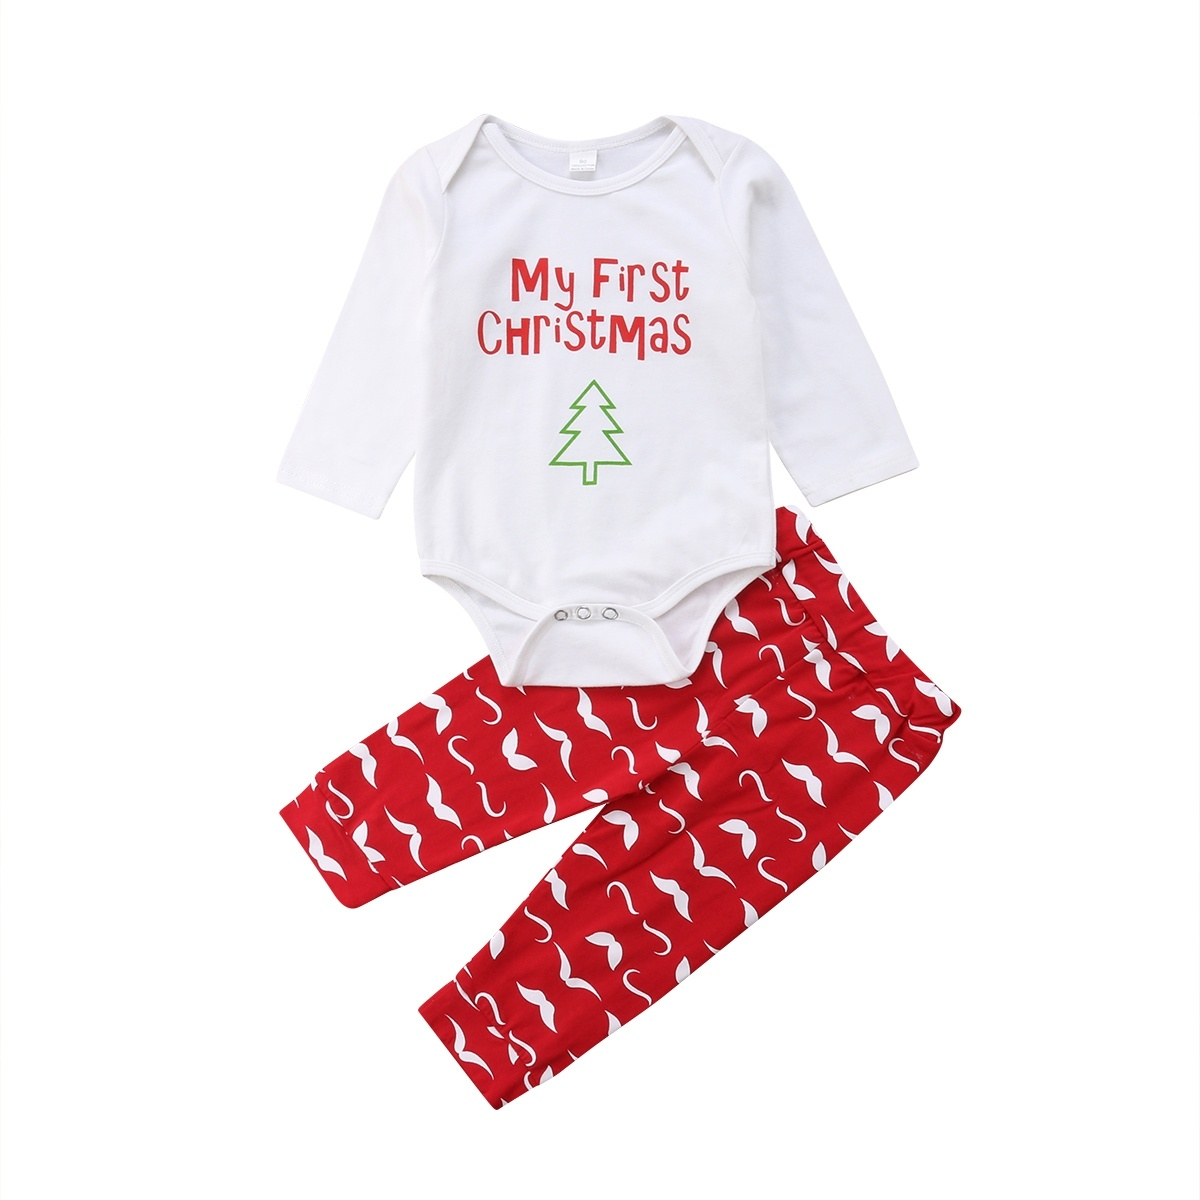 Fiomva - Baby Boys Girls My First Christmas Outfits Newborn Long ...